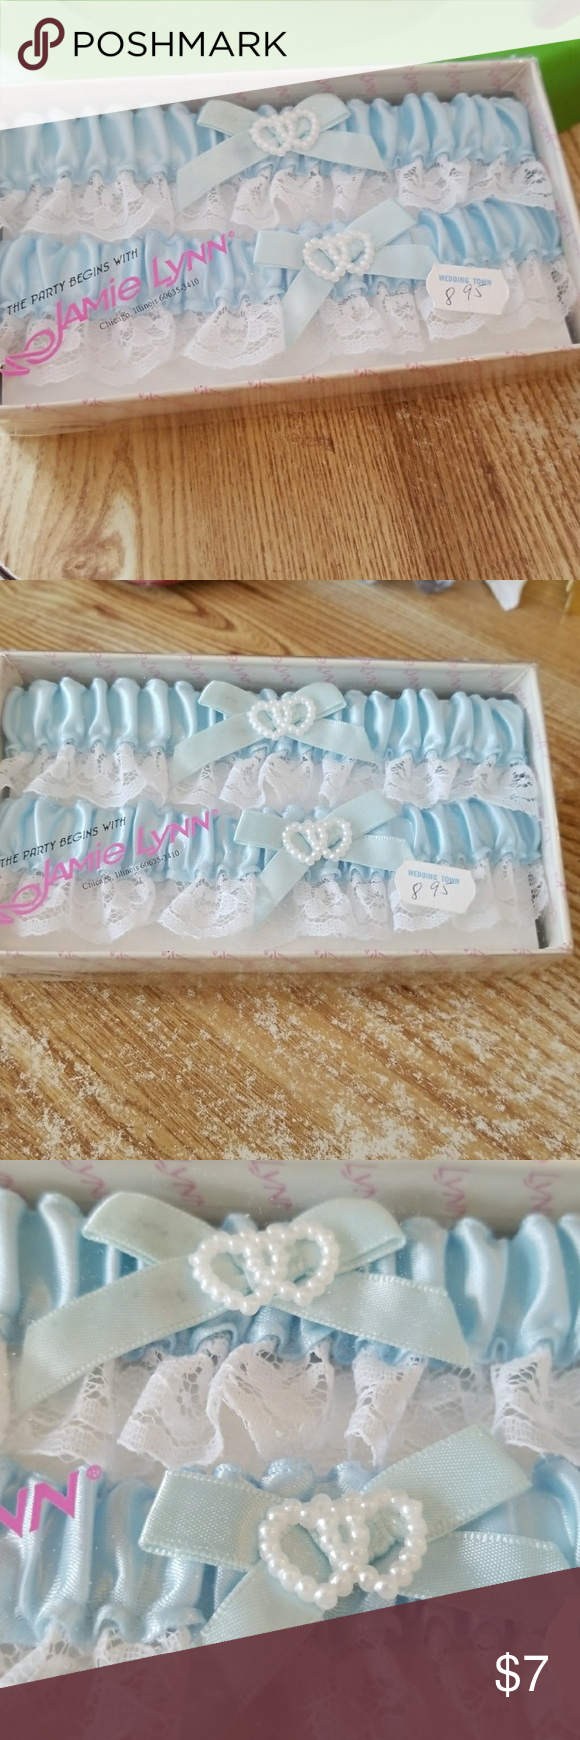 Wedding Accessories TwoWedding garters trimmed in white lace, blue bows with pearl hearts on the middle of the garter.  One for the Bride to keep and one to throw.  One box with two items. New with price on plastic top Jamie Lynn Other